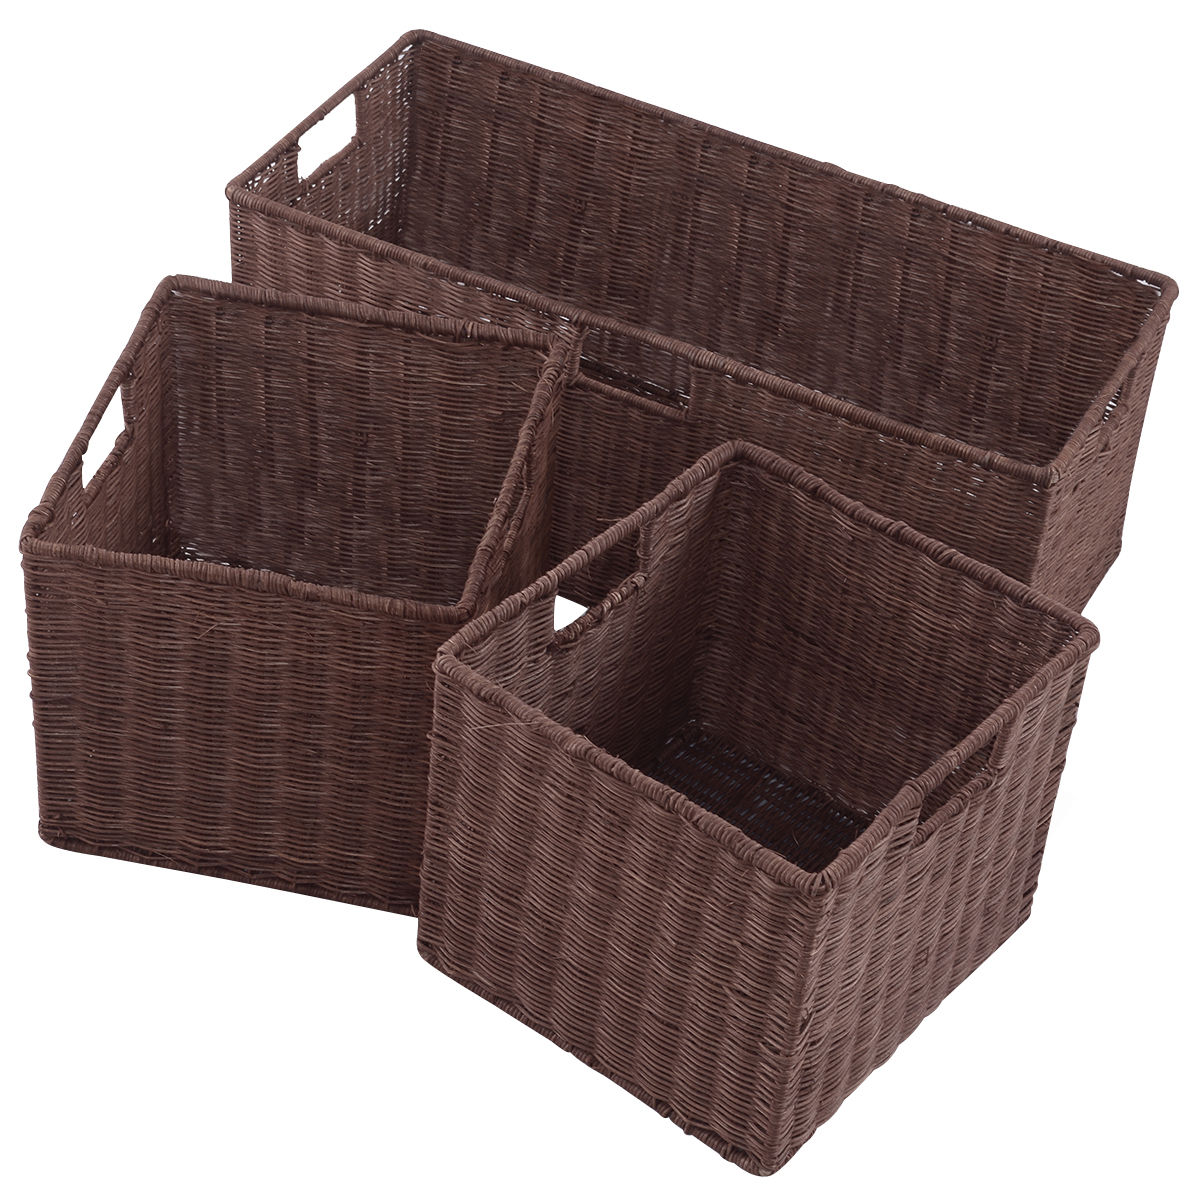 Gymax 3PCS Rattan Storage Baskets Nest Nesting Cube Bin Box